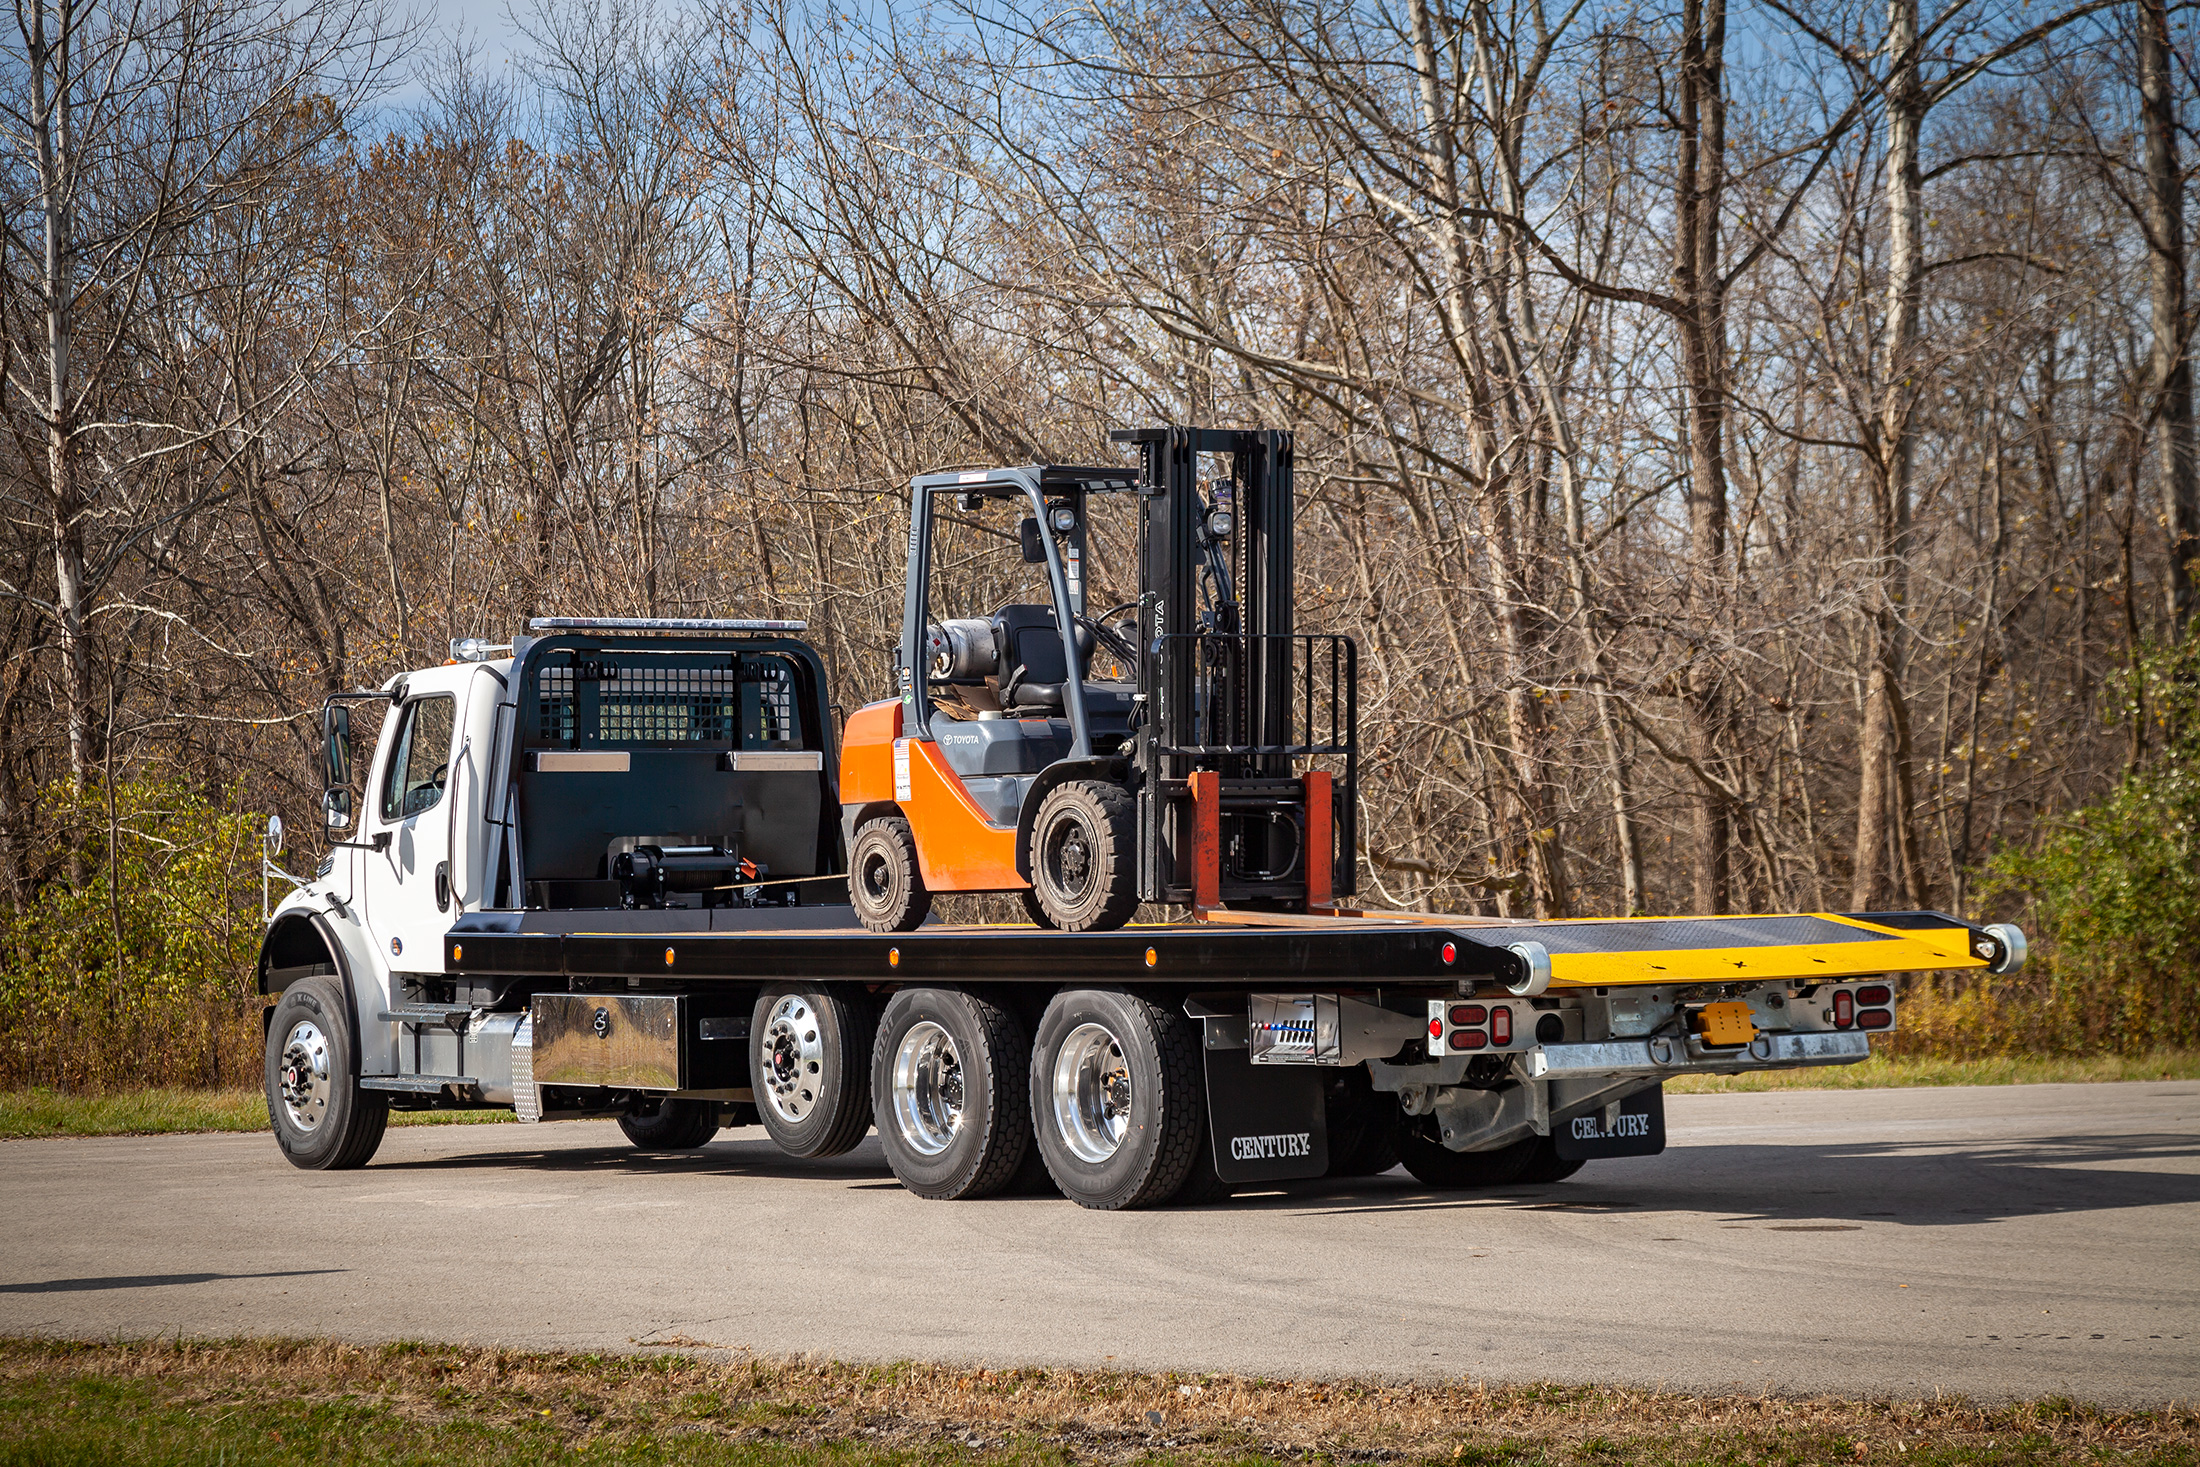 titan zla on white Freightliner m2 chassis with forklift